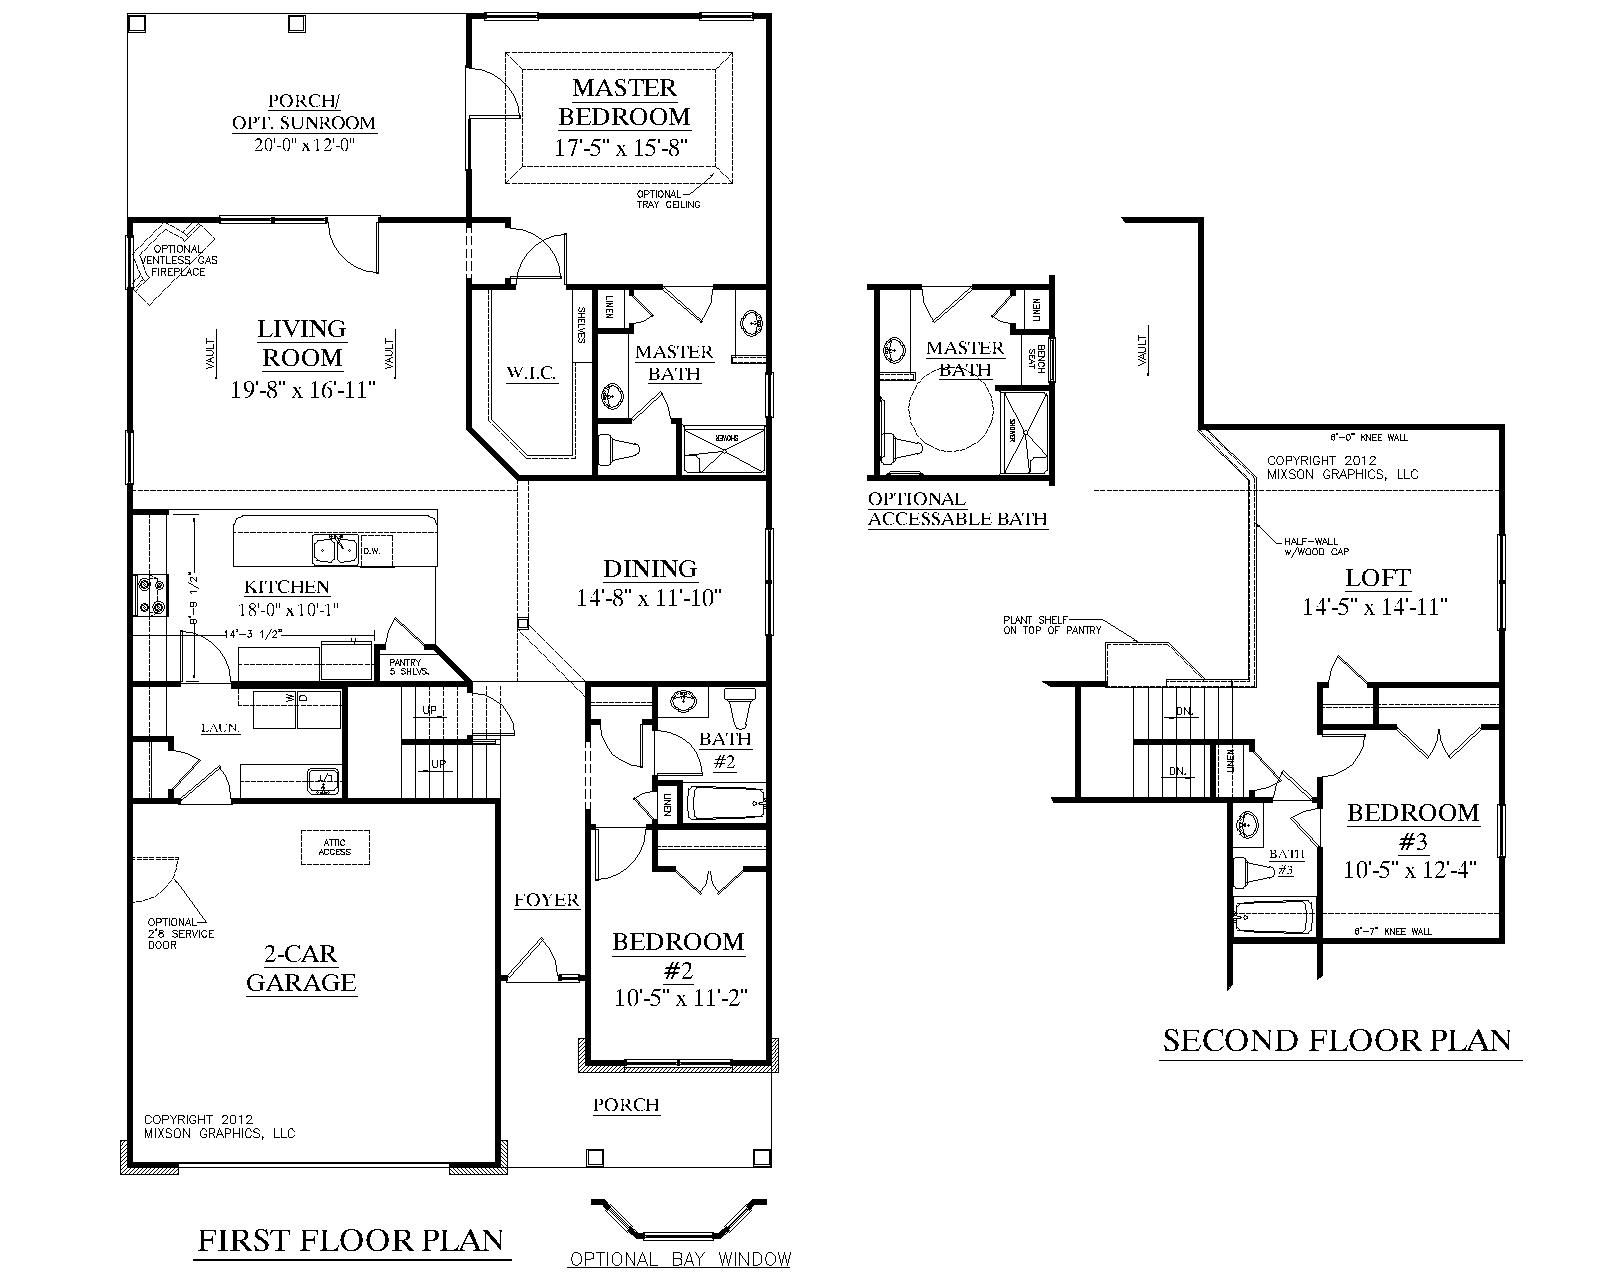 master bedroom loft house plans house plan 2224 kingstree floor plan traditional 1 1 2 19142